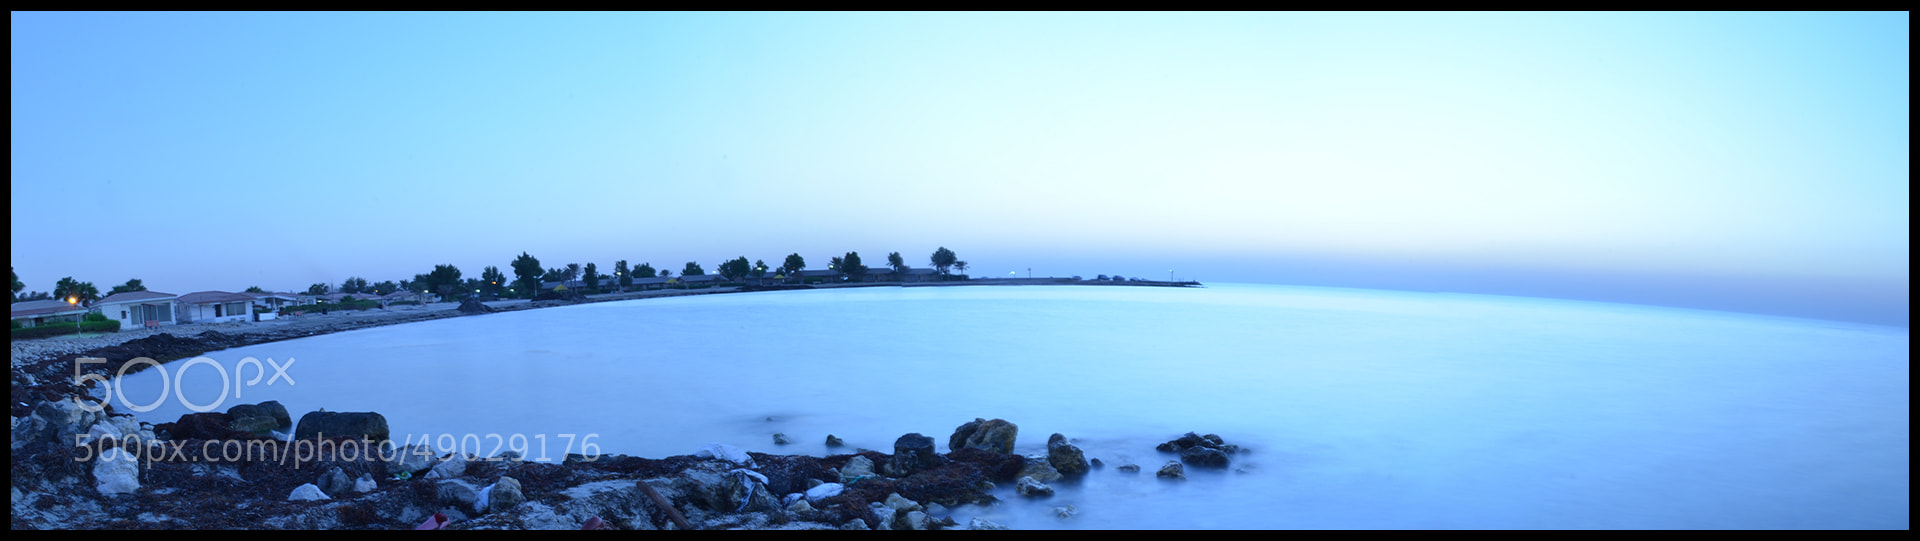 Photograph Panorama beach by Hussain Ali on 500px